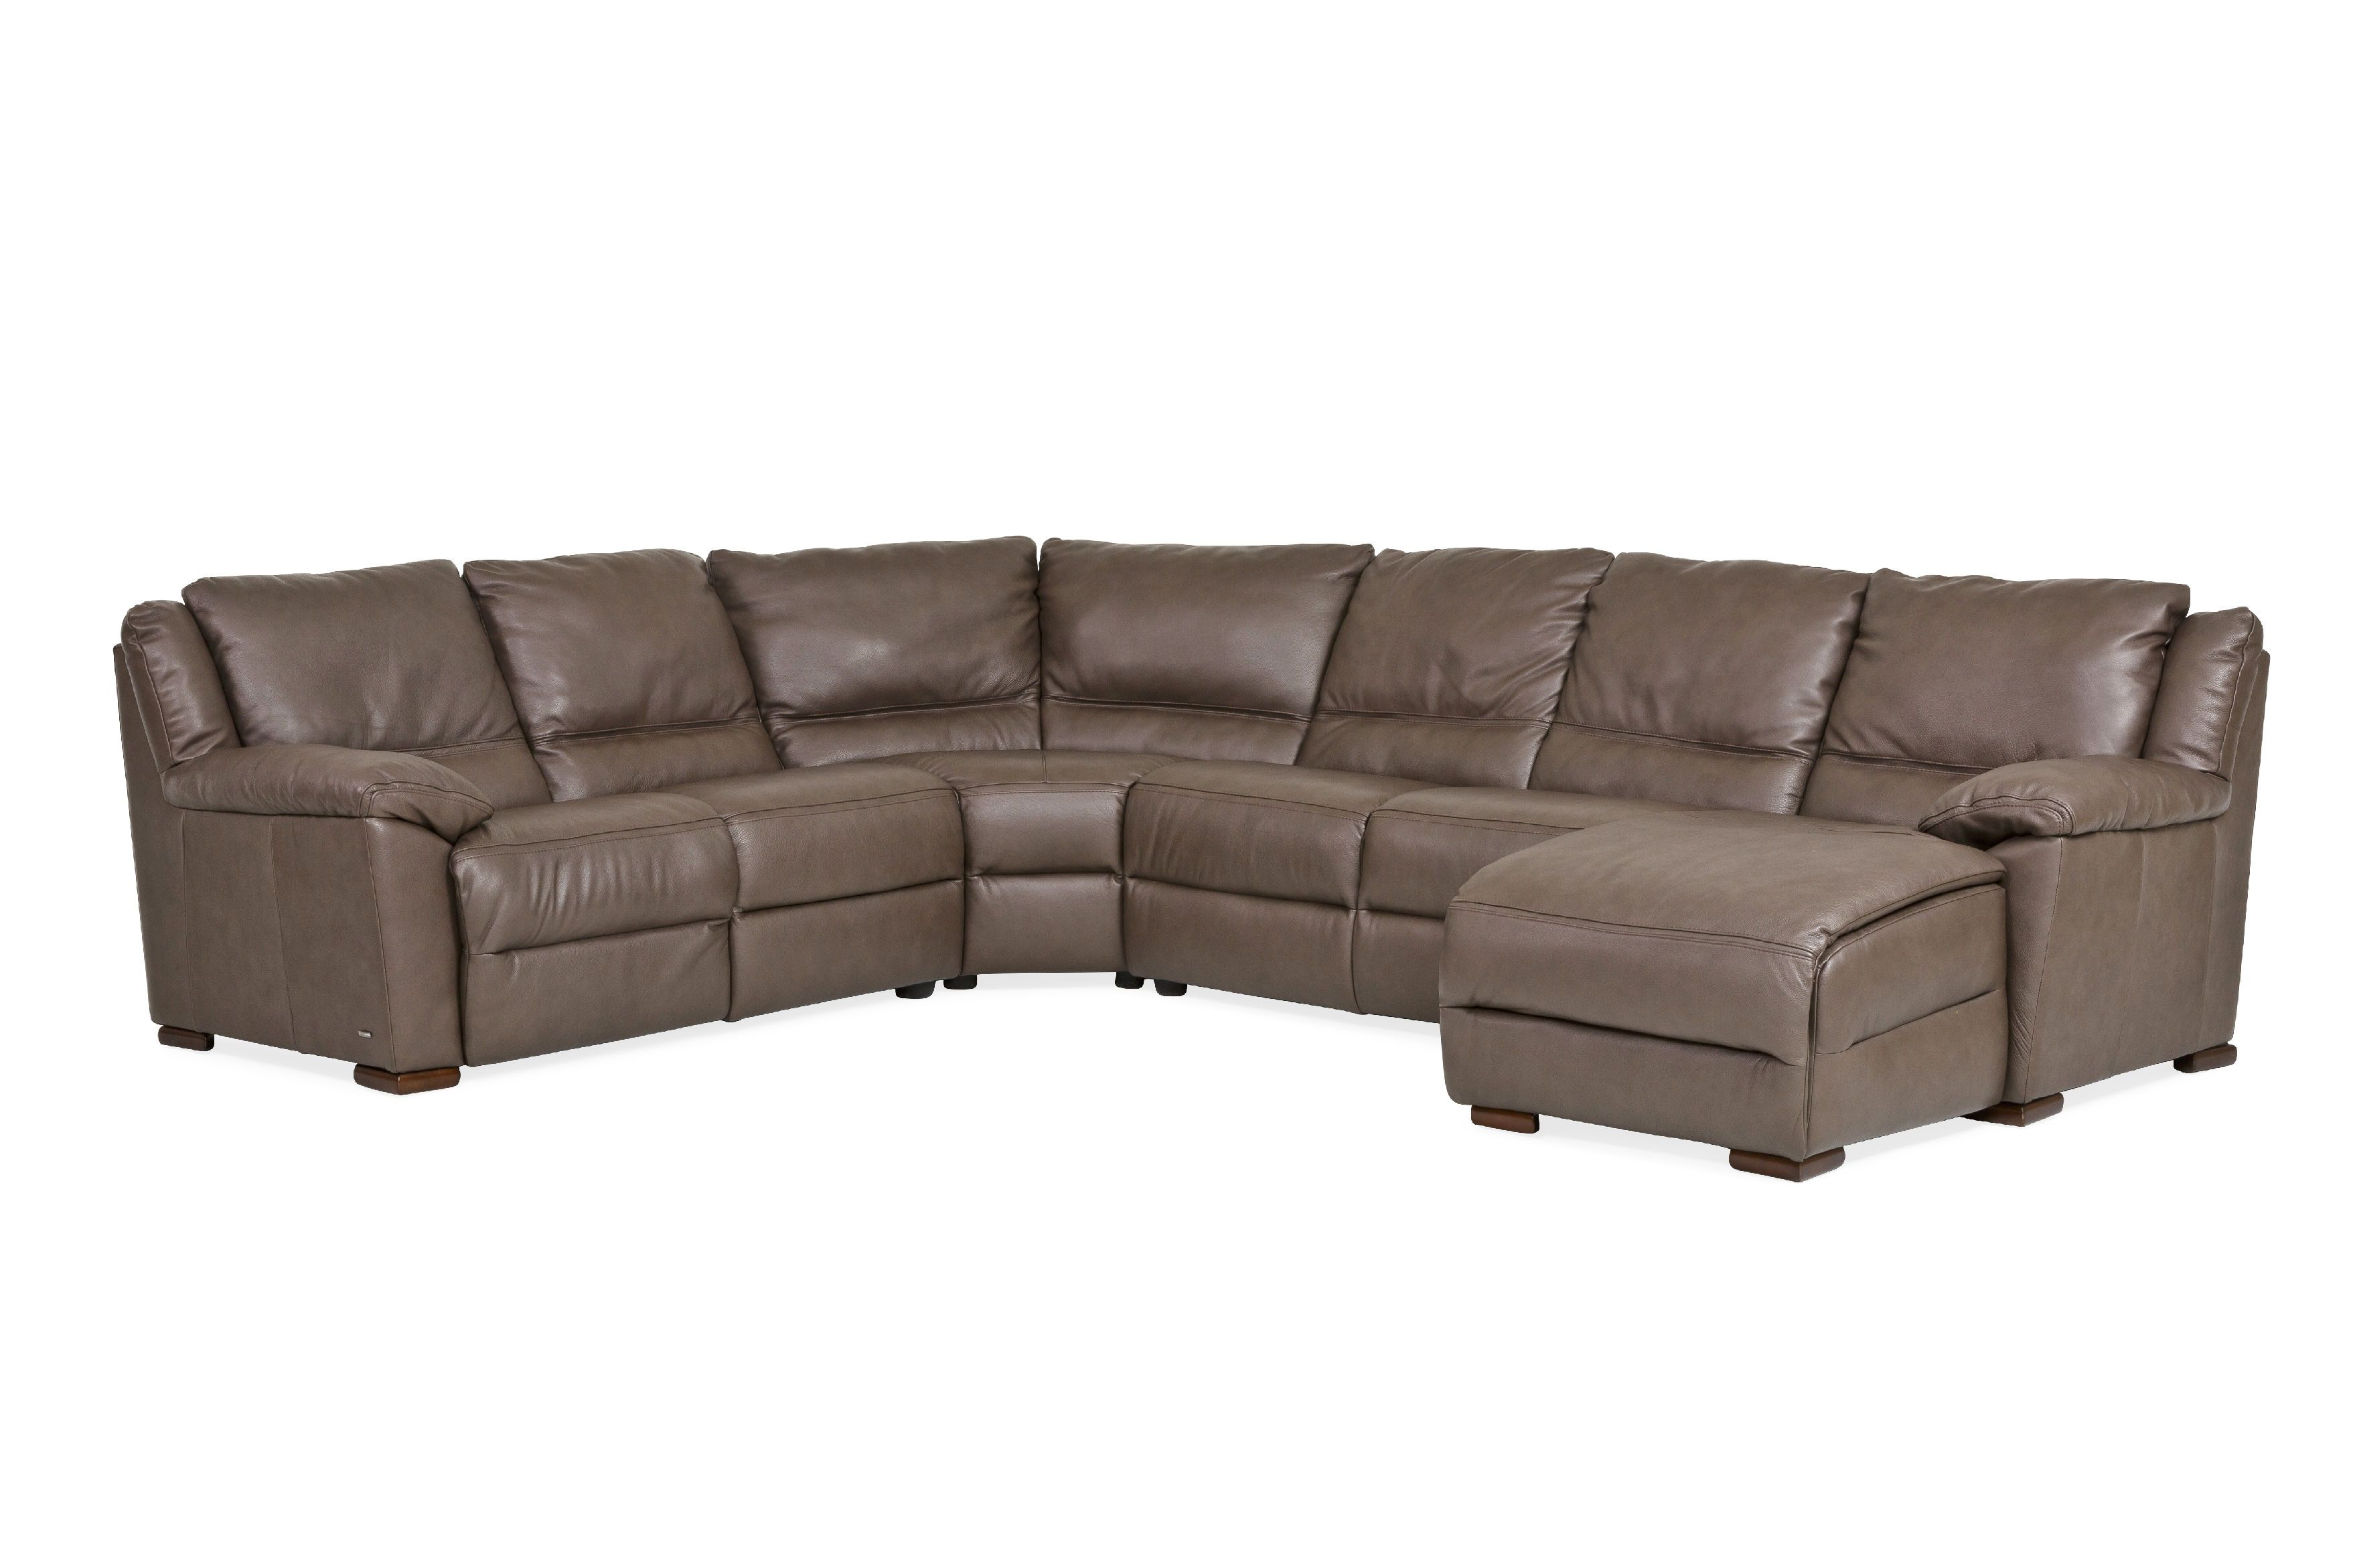 100% Natuzzi leather sectional features a recliner and chaise